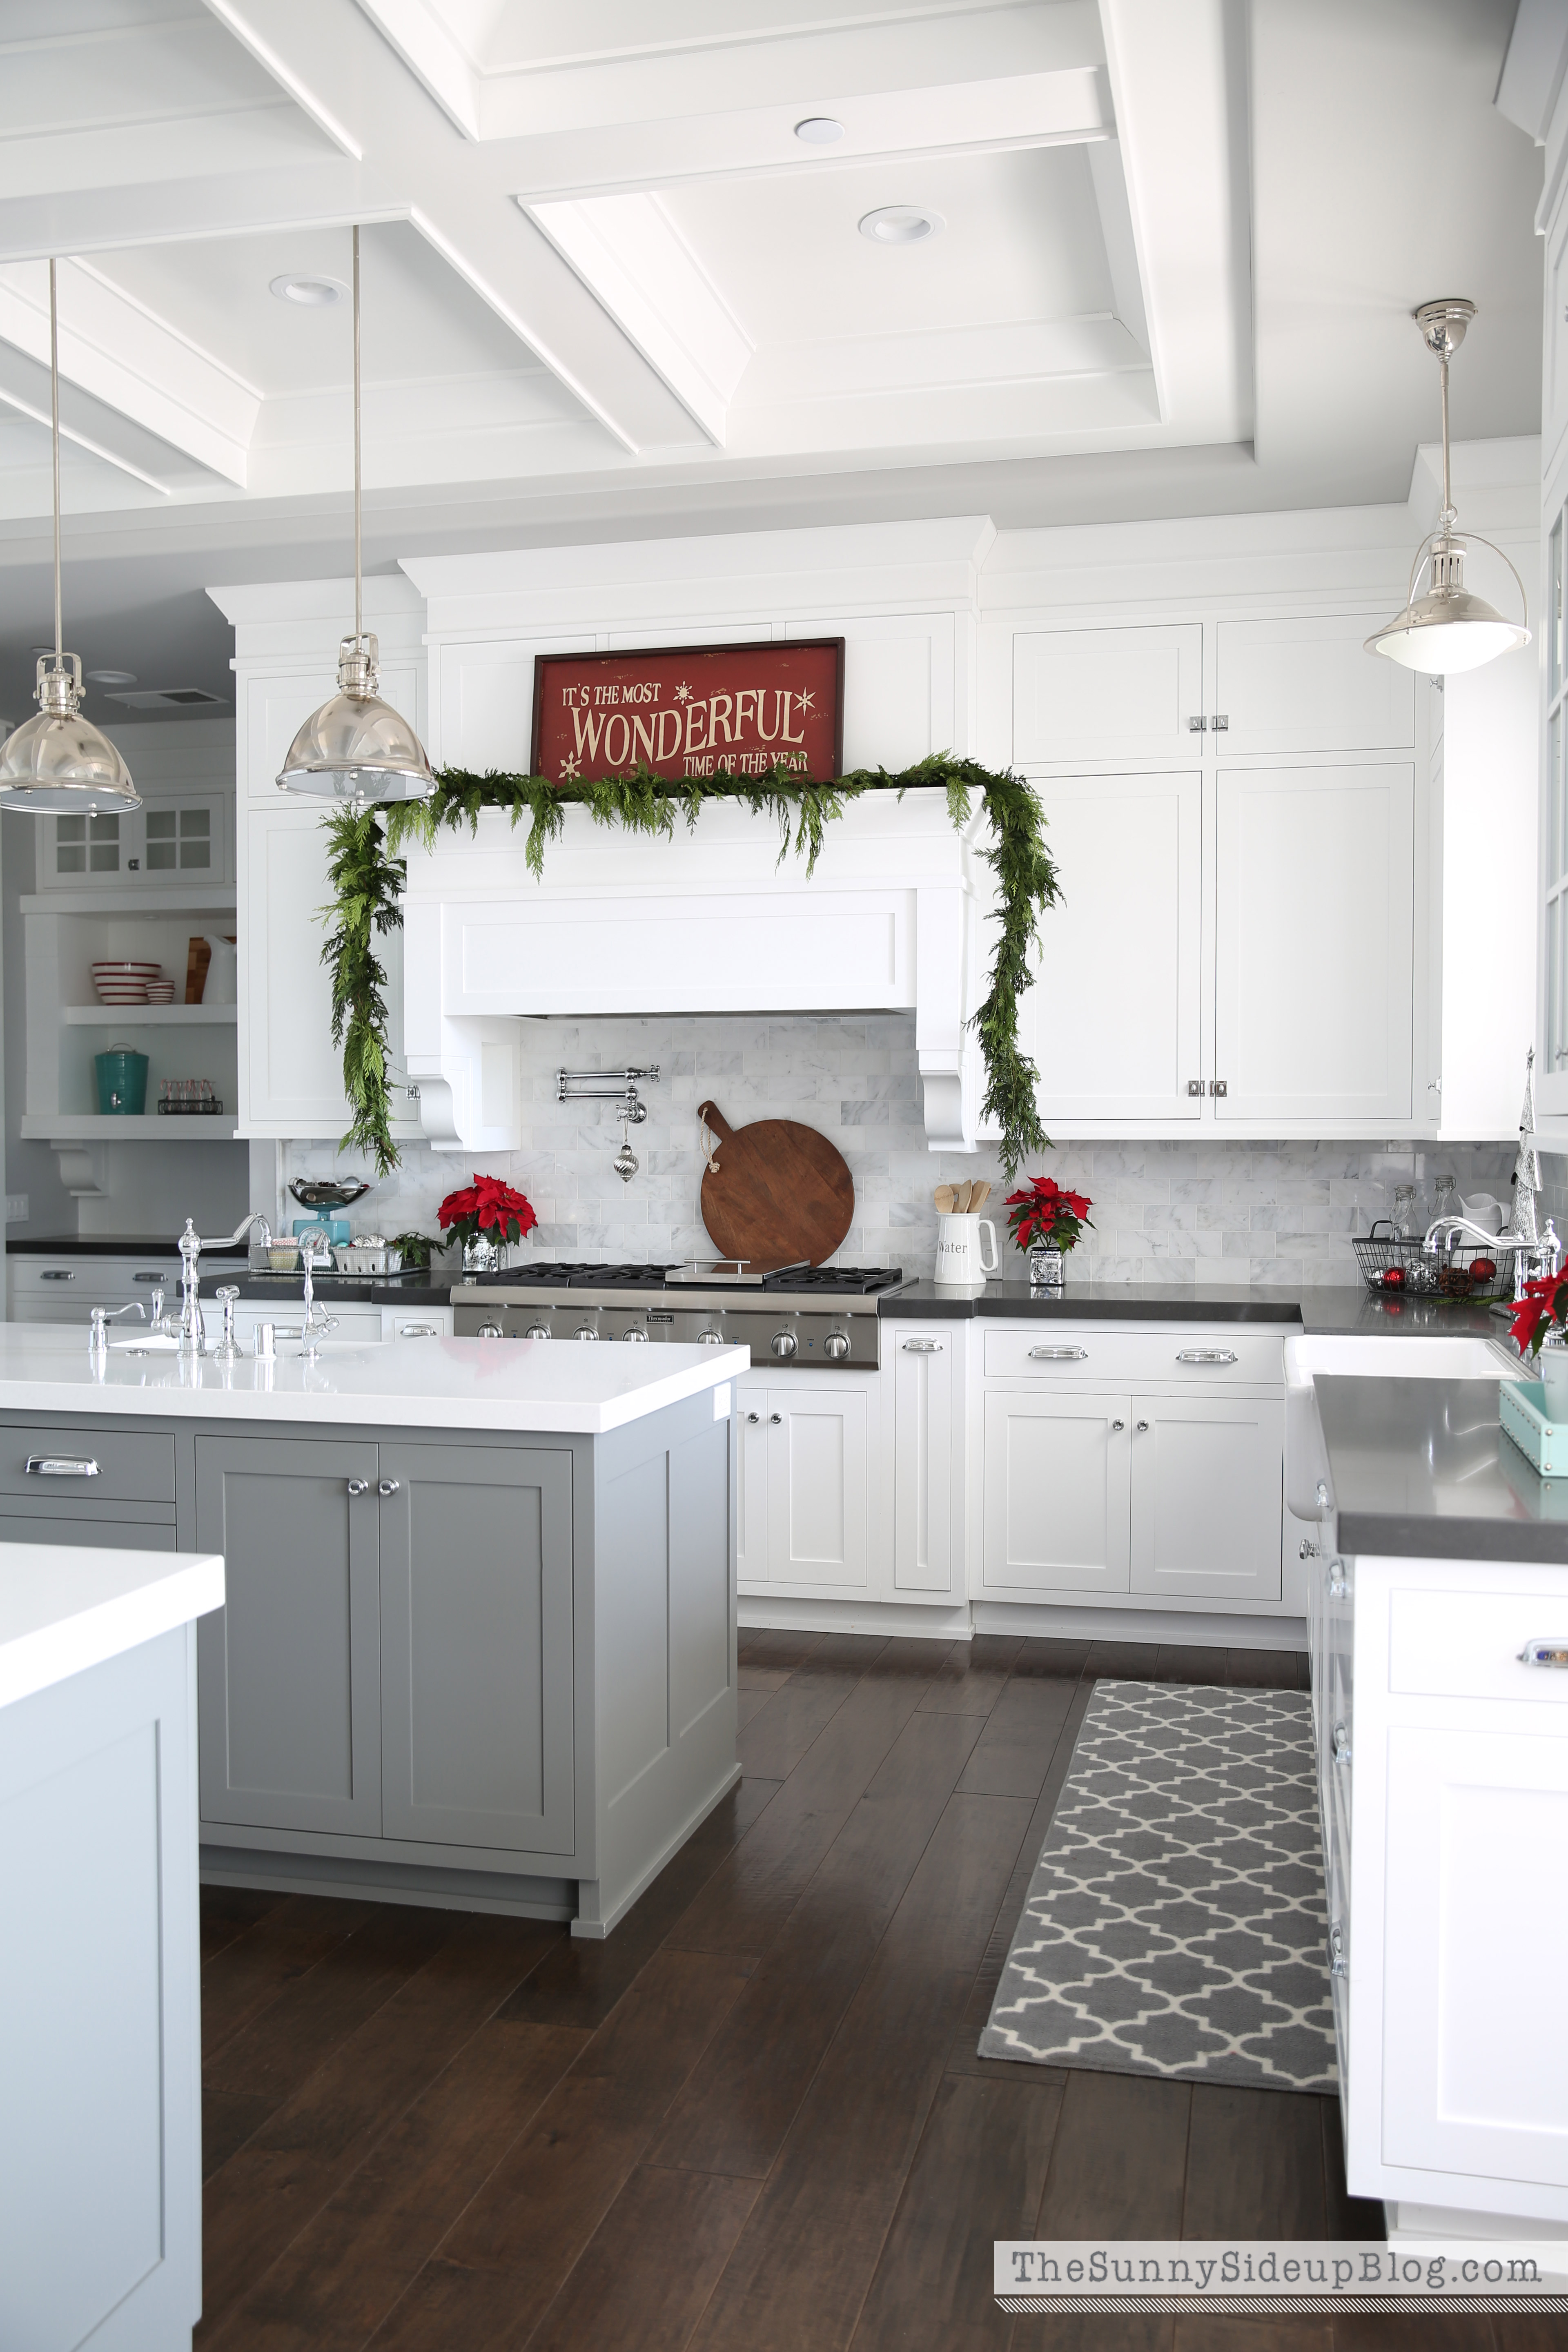 I Spy Design Series and Christmas Past